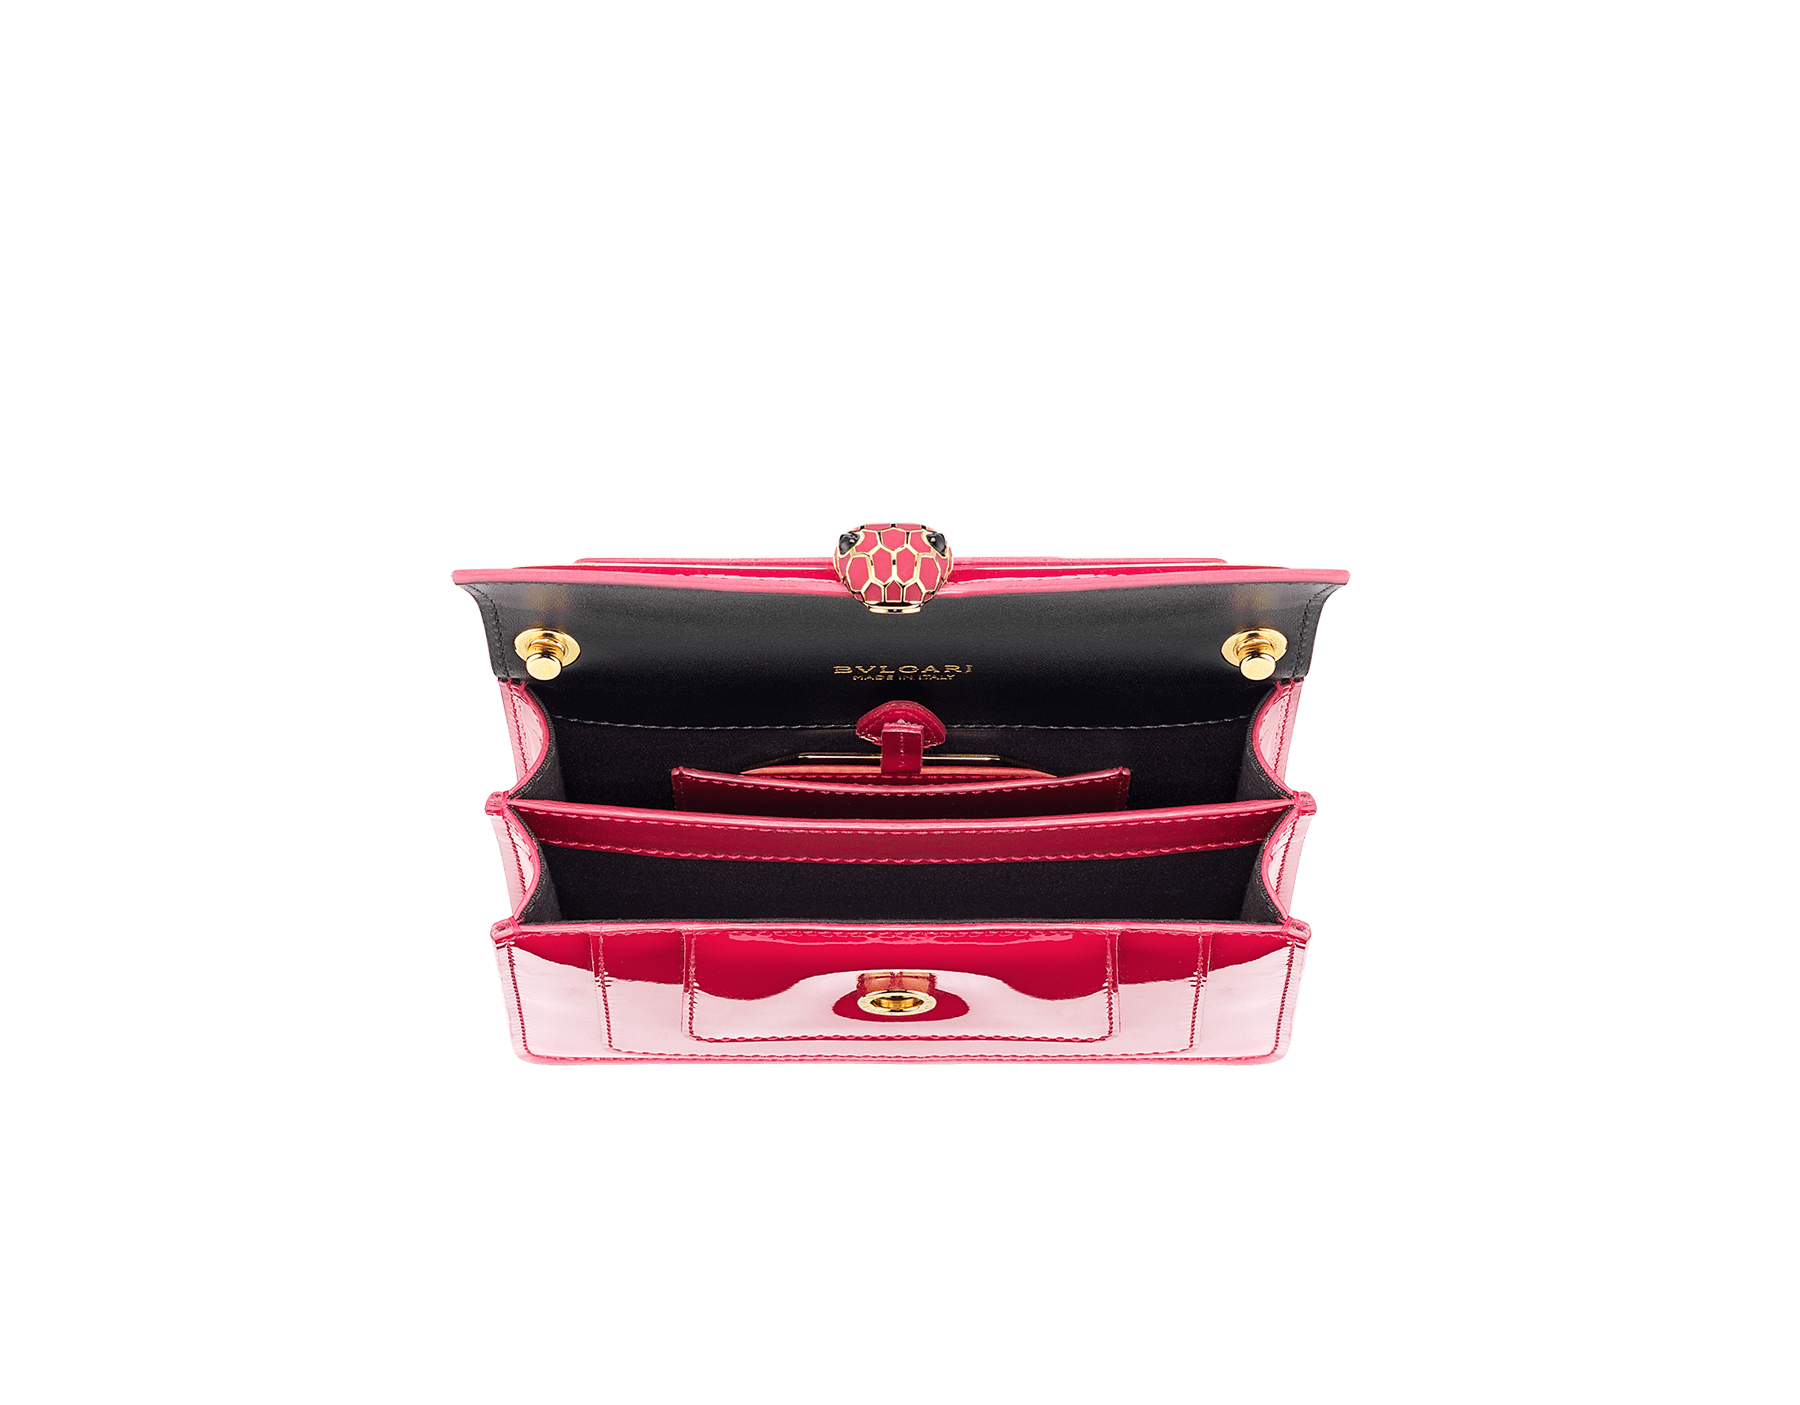 """Serpenti Forever"" crossbody mini bag in Magenta Spinel purple with a varnished and pearled effect, and black grosgrain inner lining. Gold-plated brass snakehead closure in full matte Magenta Spinel purple enamel, with black onyx eyes. Lunar New Year Special Edition. 986-VCL image 4"